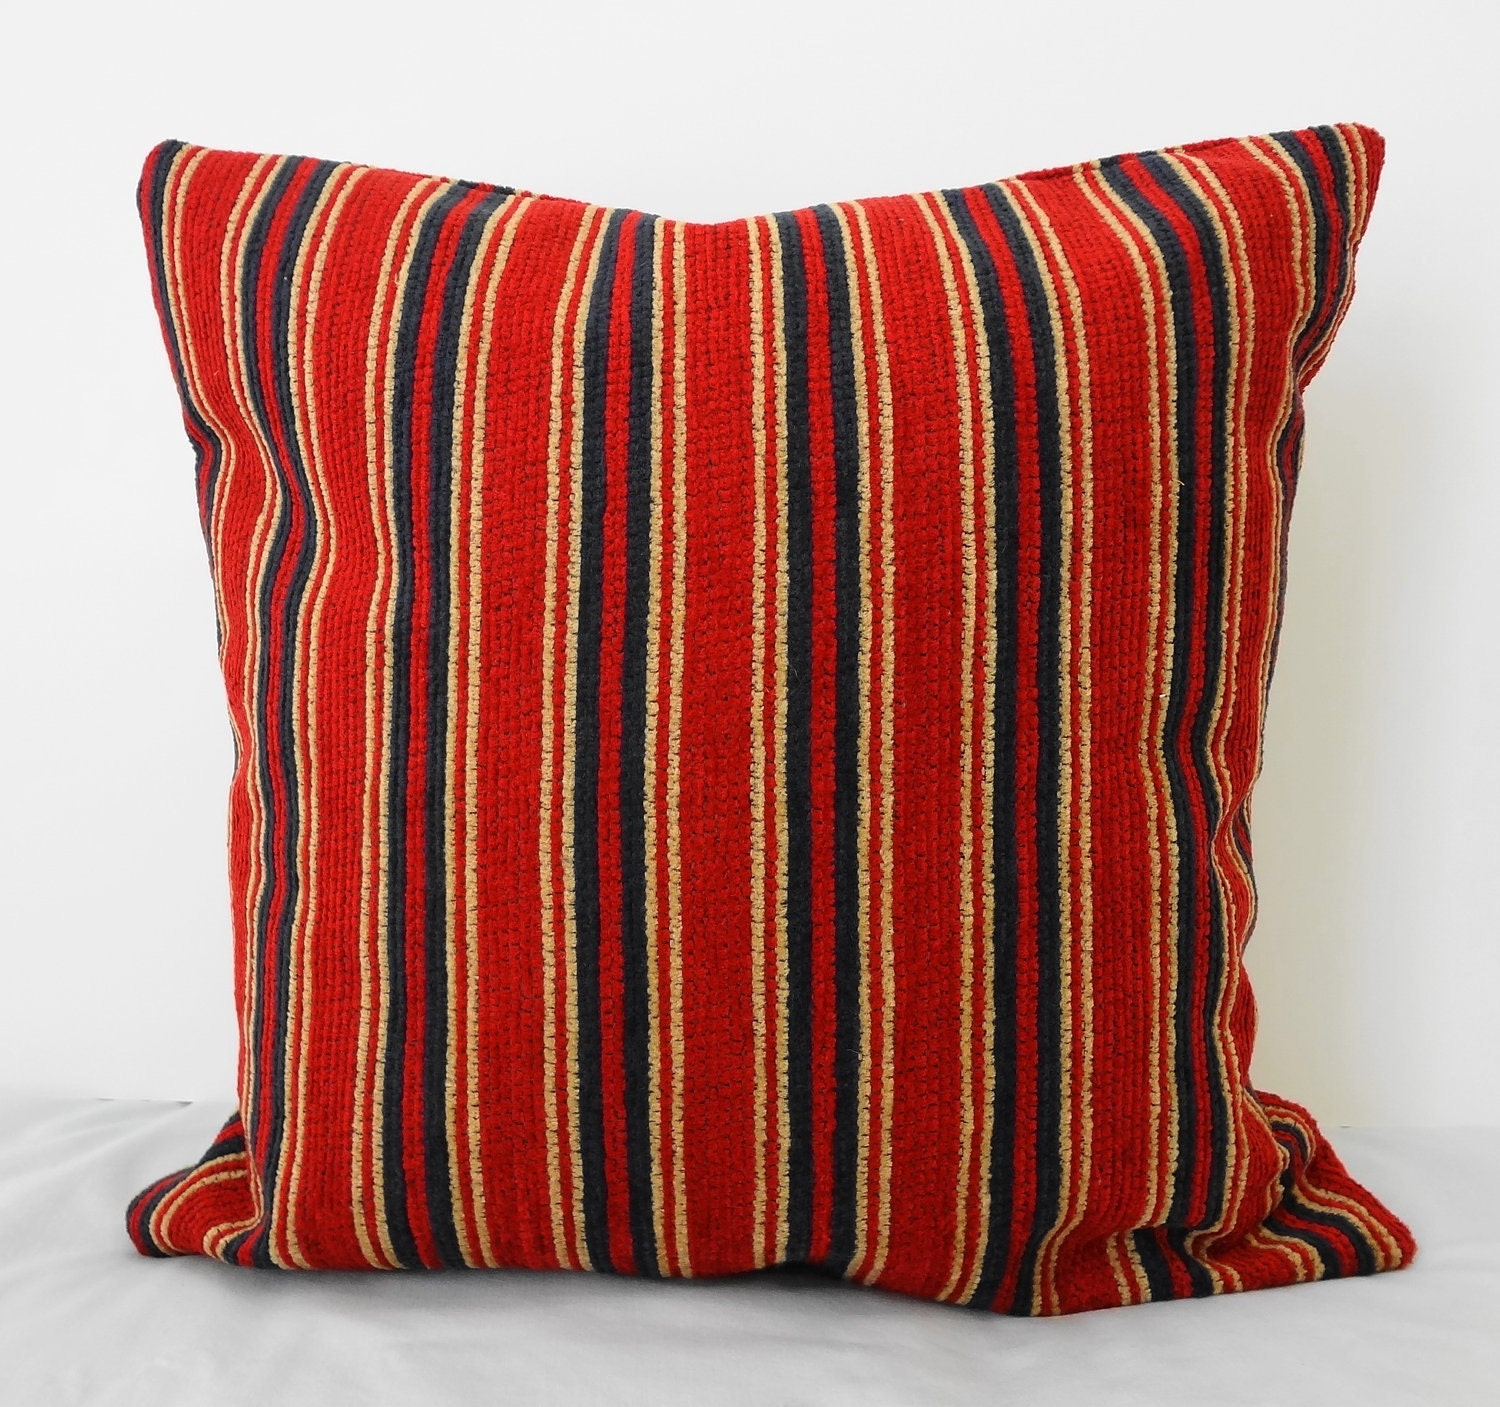 Blue Striped Decorative Pillows : Decorative Throw Pillow Cover Red & Blue Striped Pillow